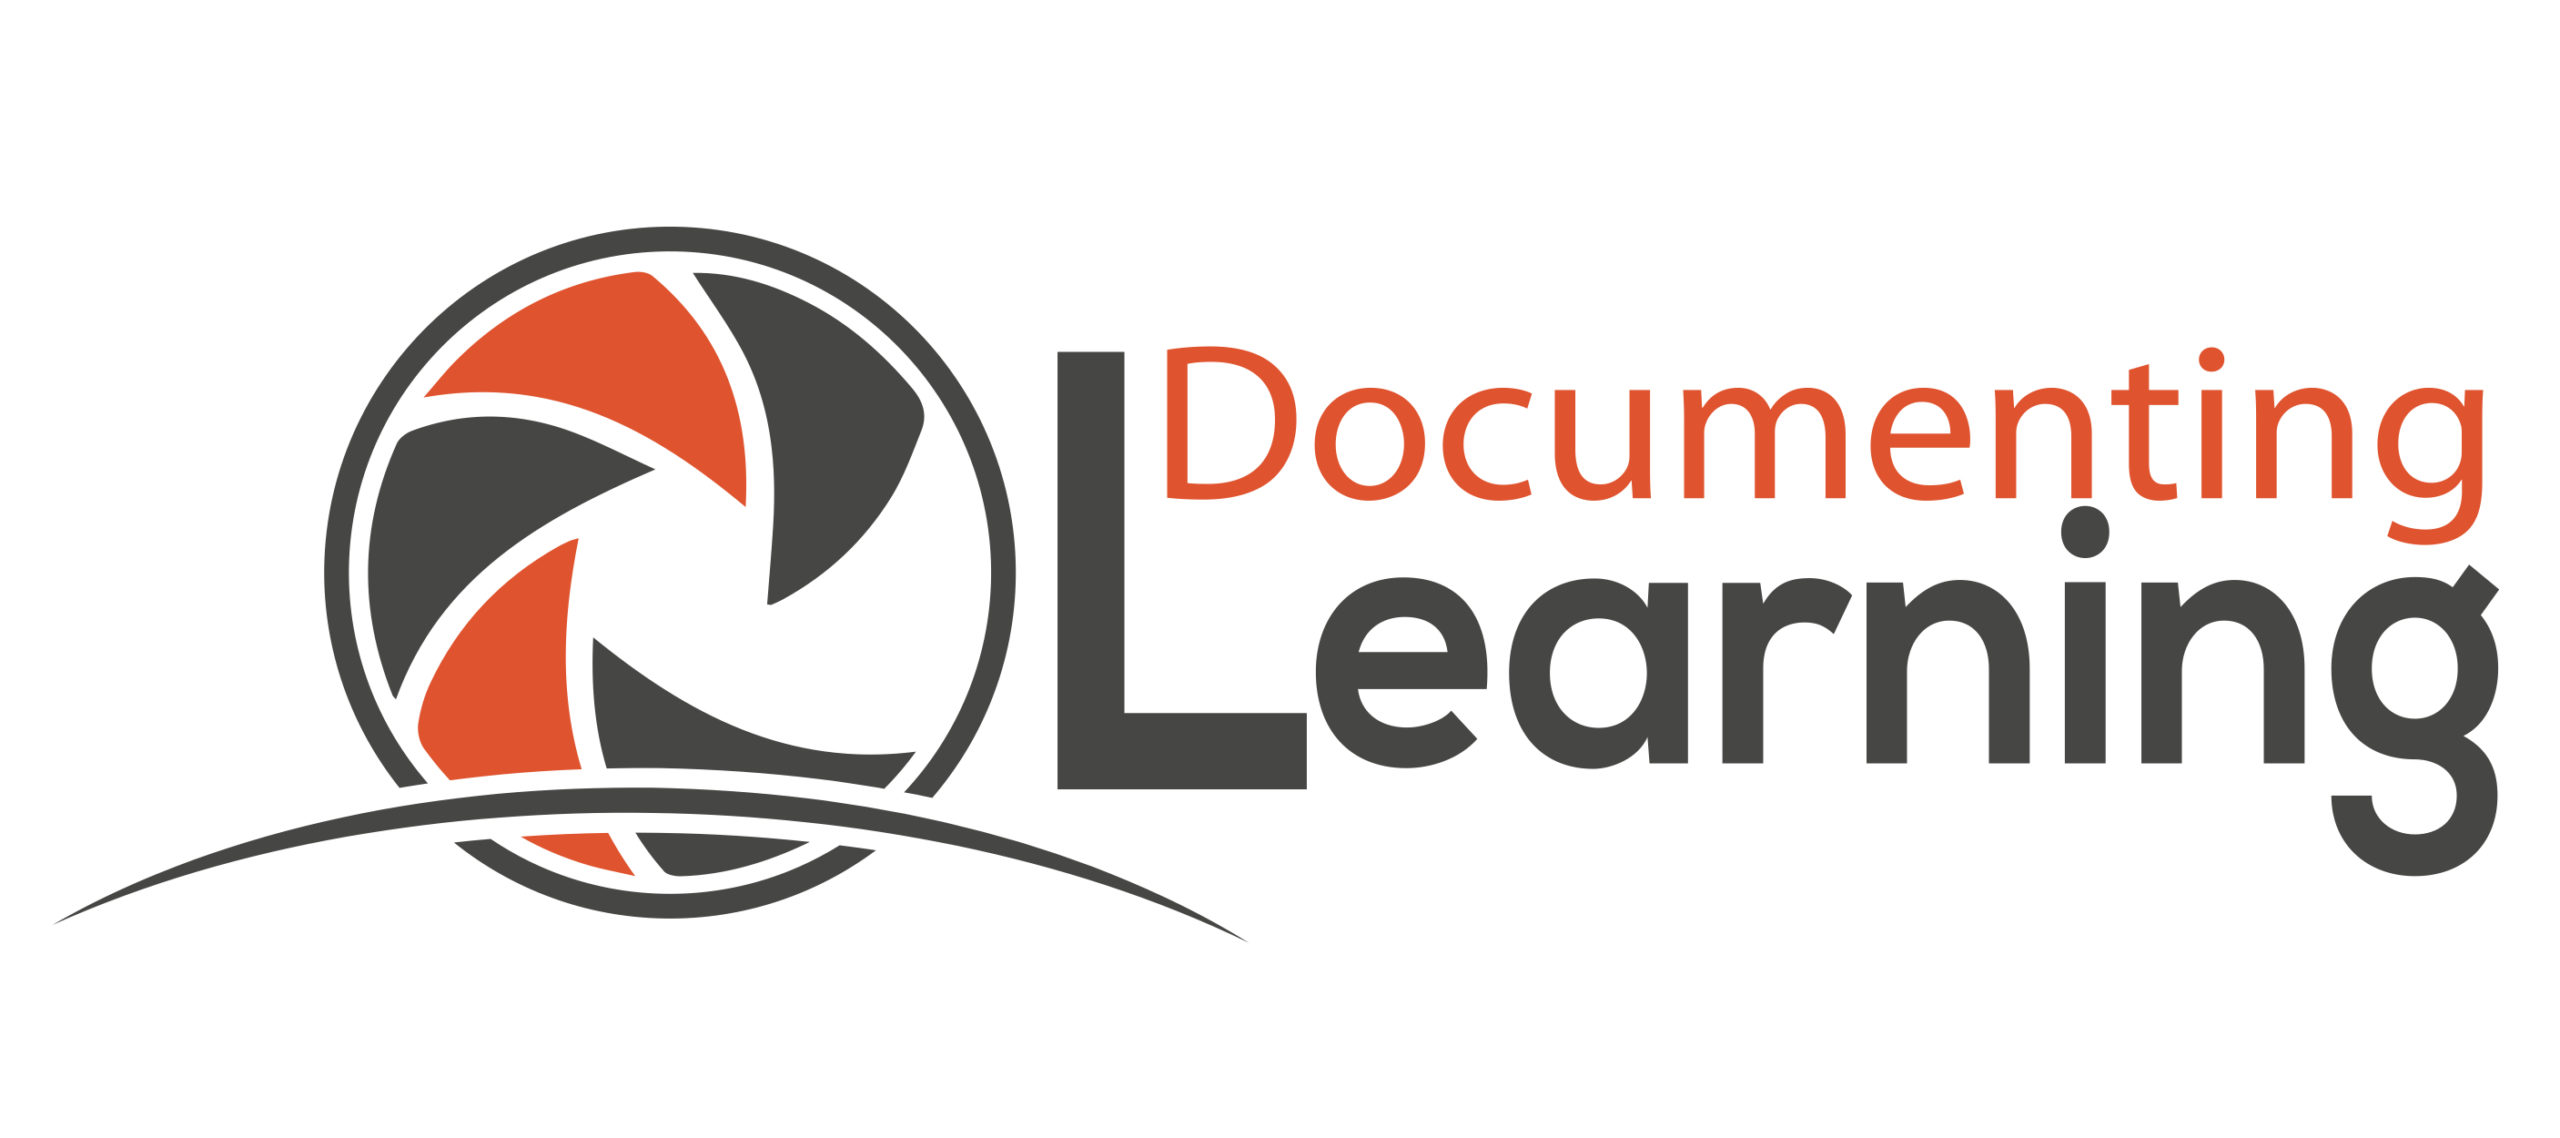 Documenting4learning